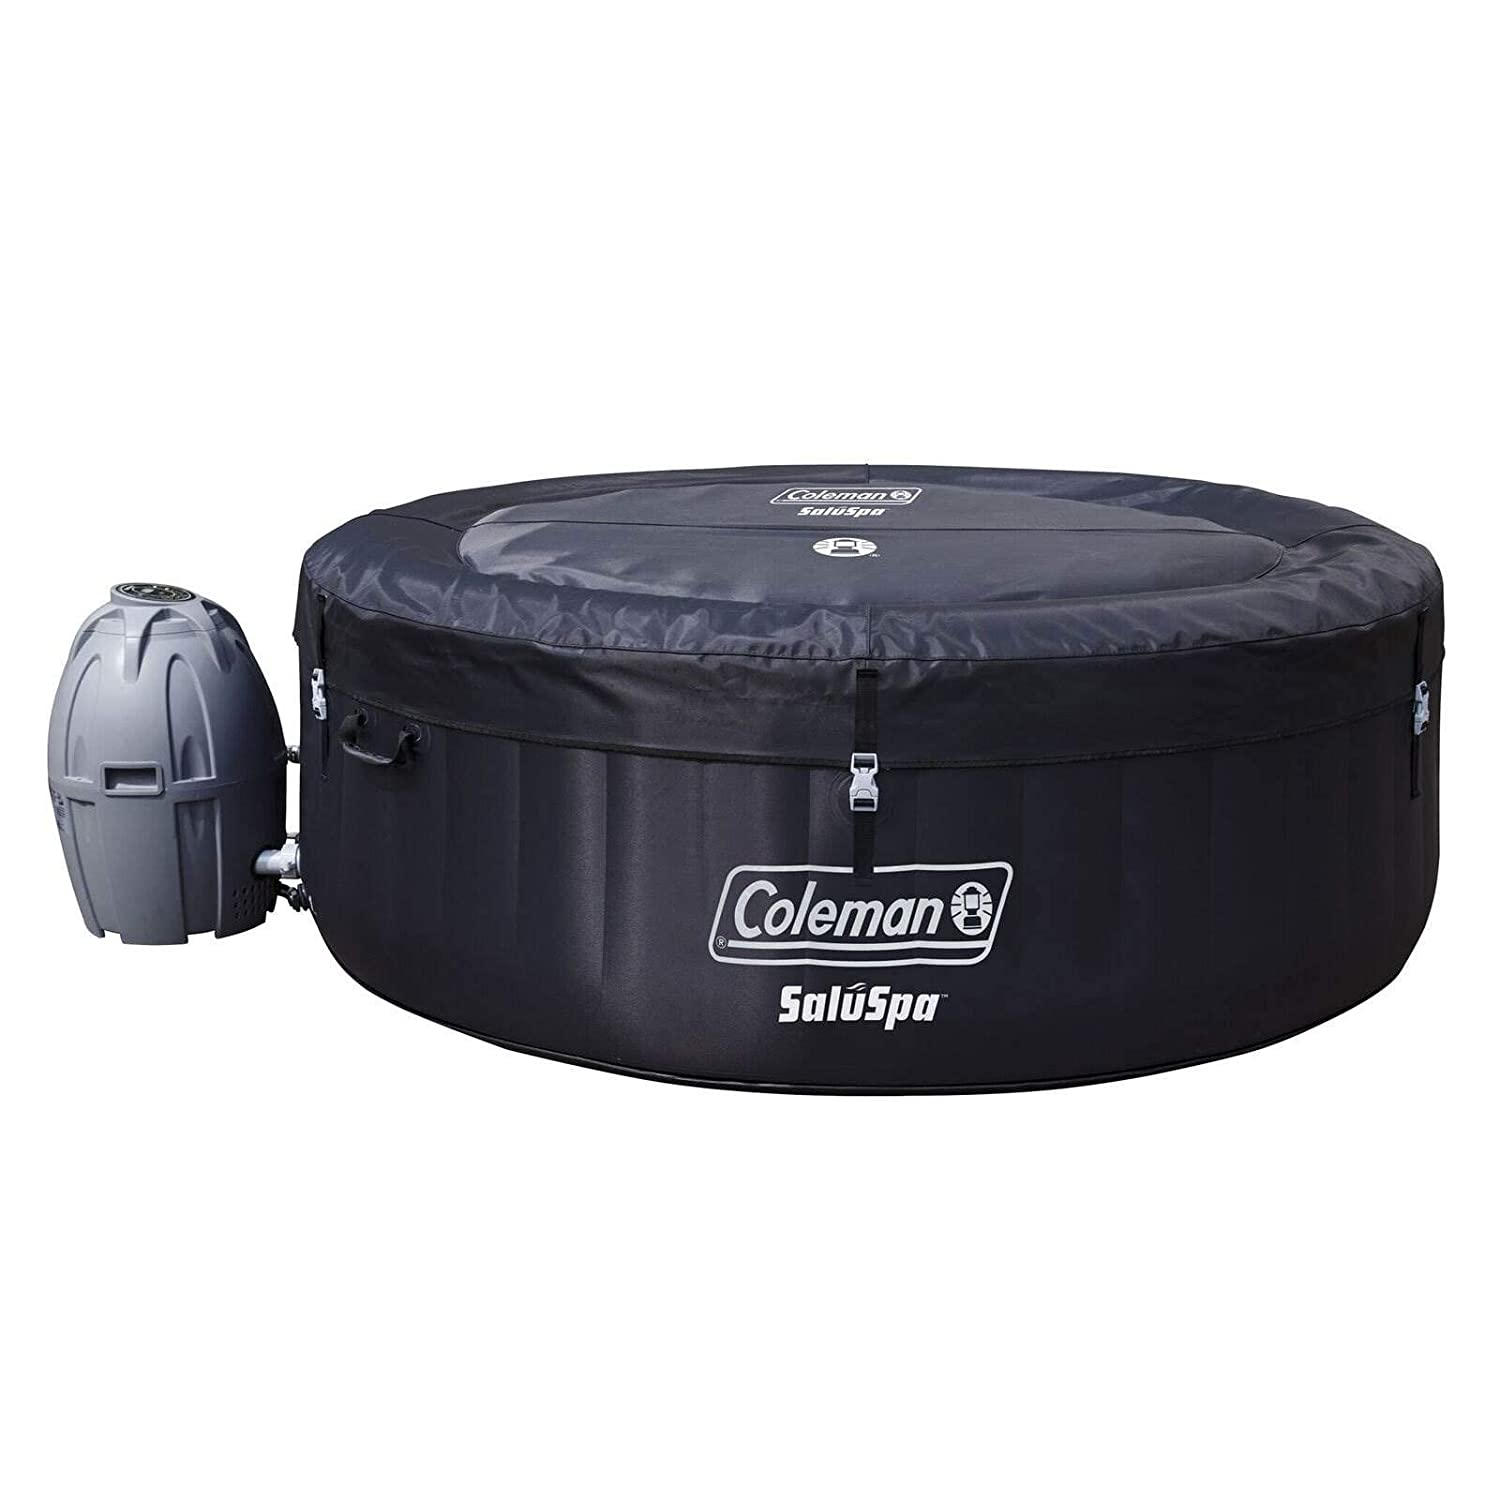 2.Coleman SaluSpa Inflatable Hot Tub